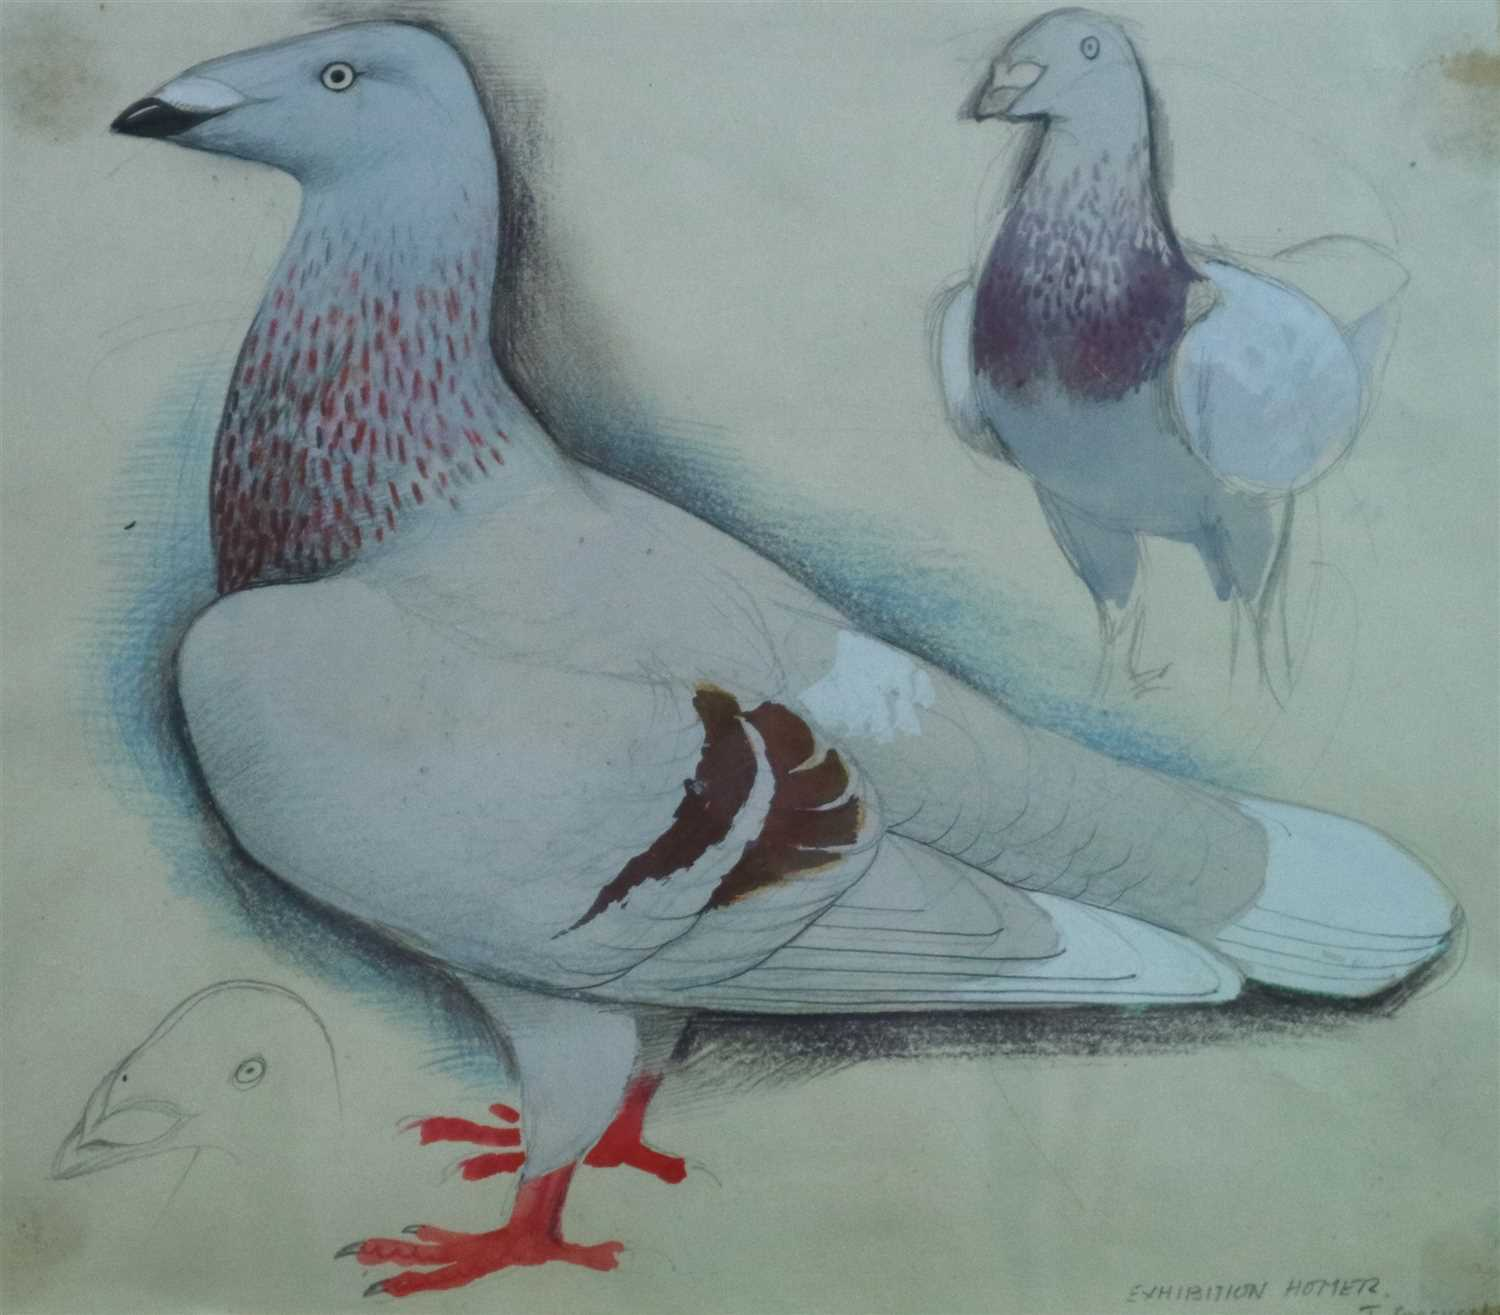 18 - Charles Frederick Tunnicliffe (1901 - 1979), Exhibition Homer